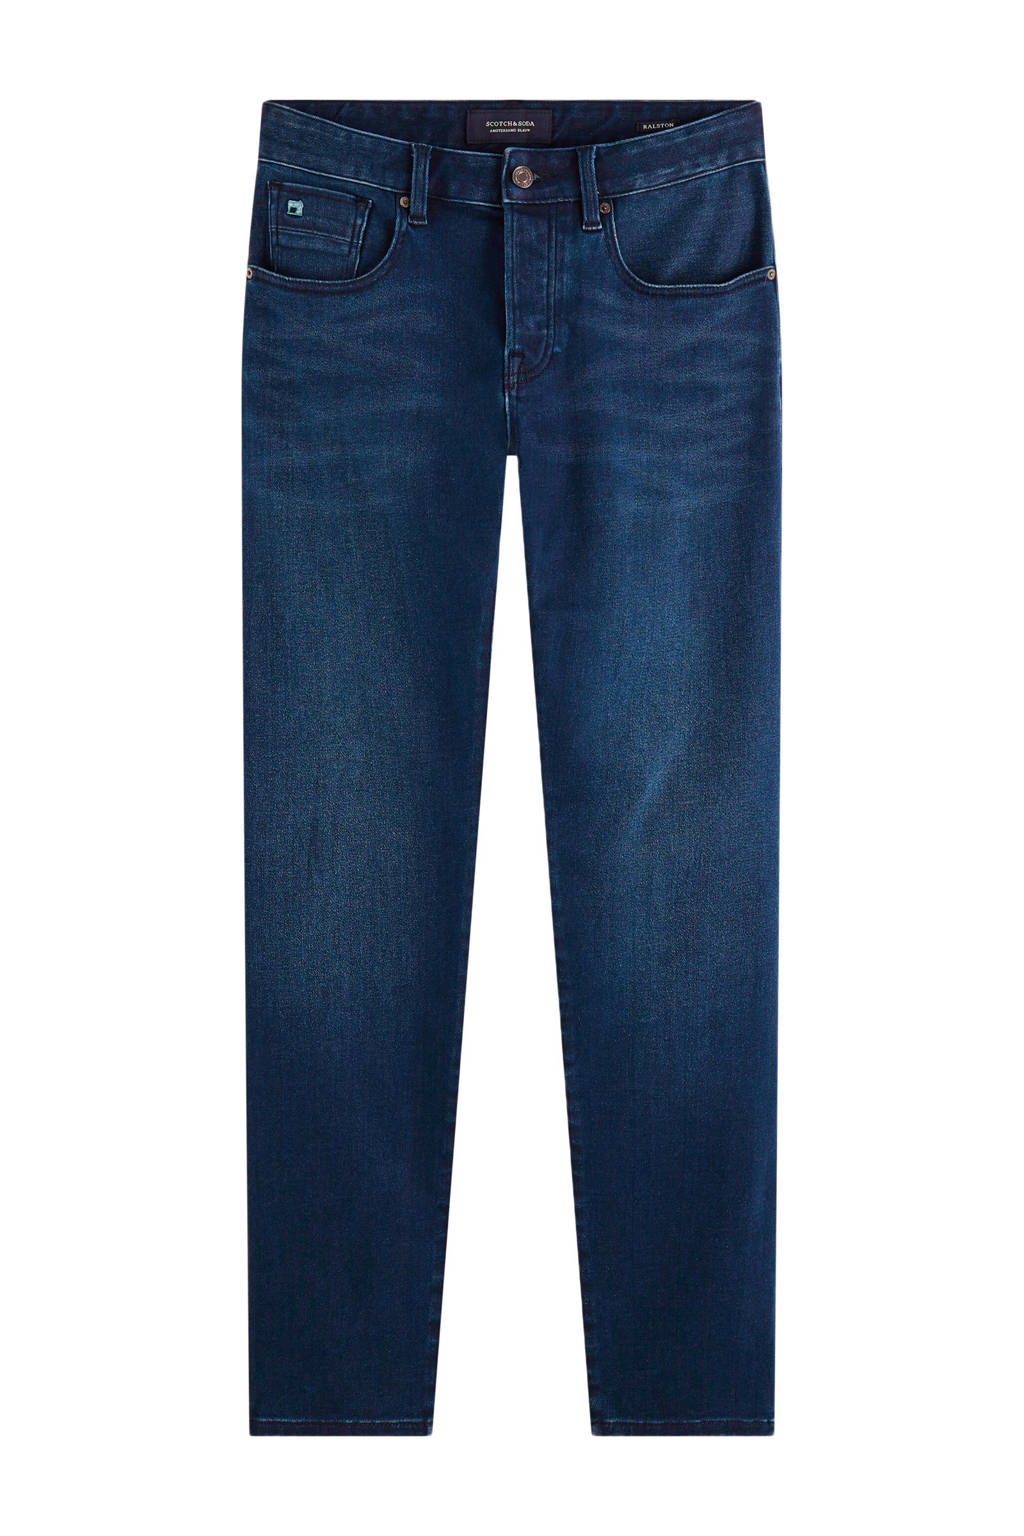 Scotch & Soda slim fit jeans Ralston spyglass dark, Spyglass Dark